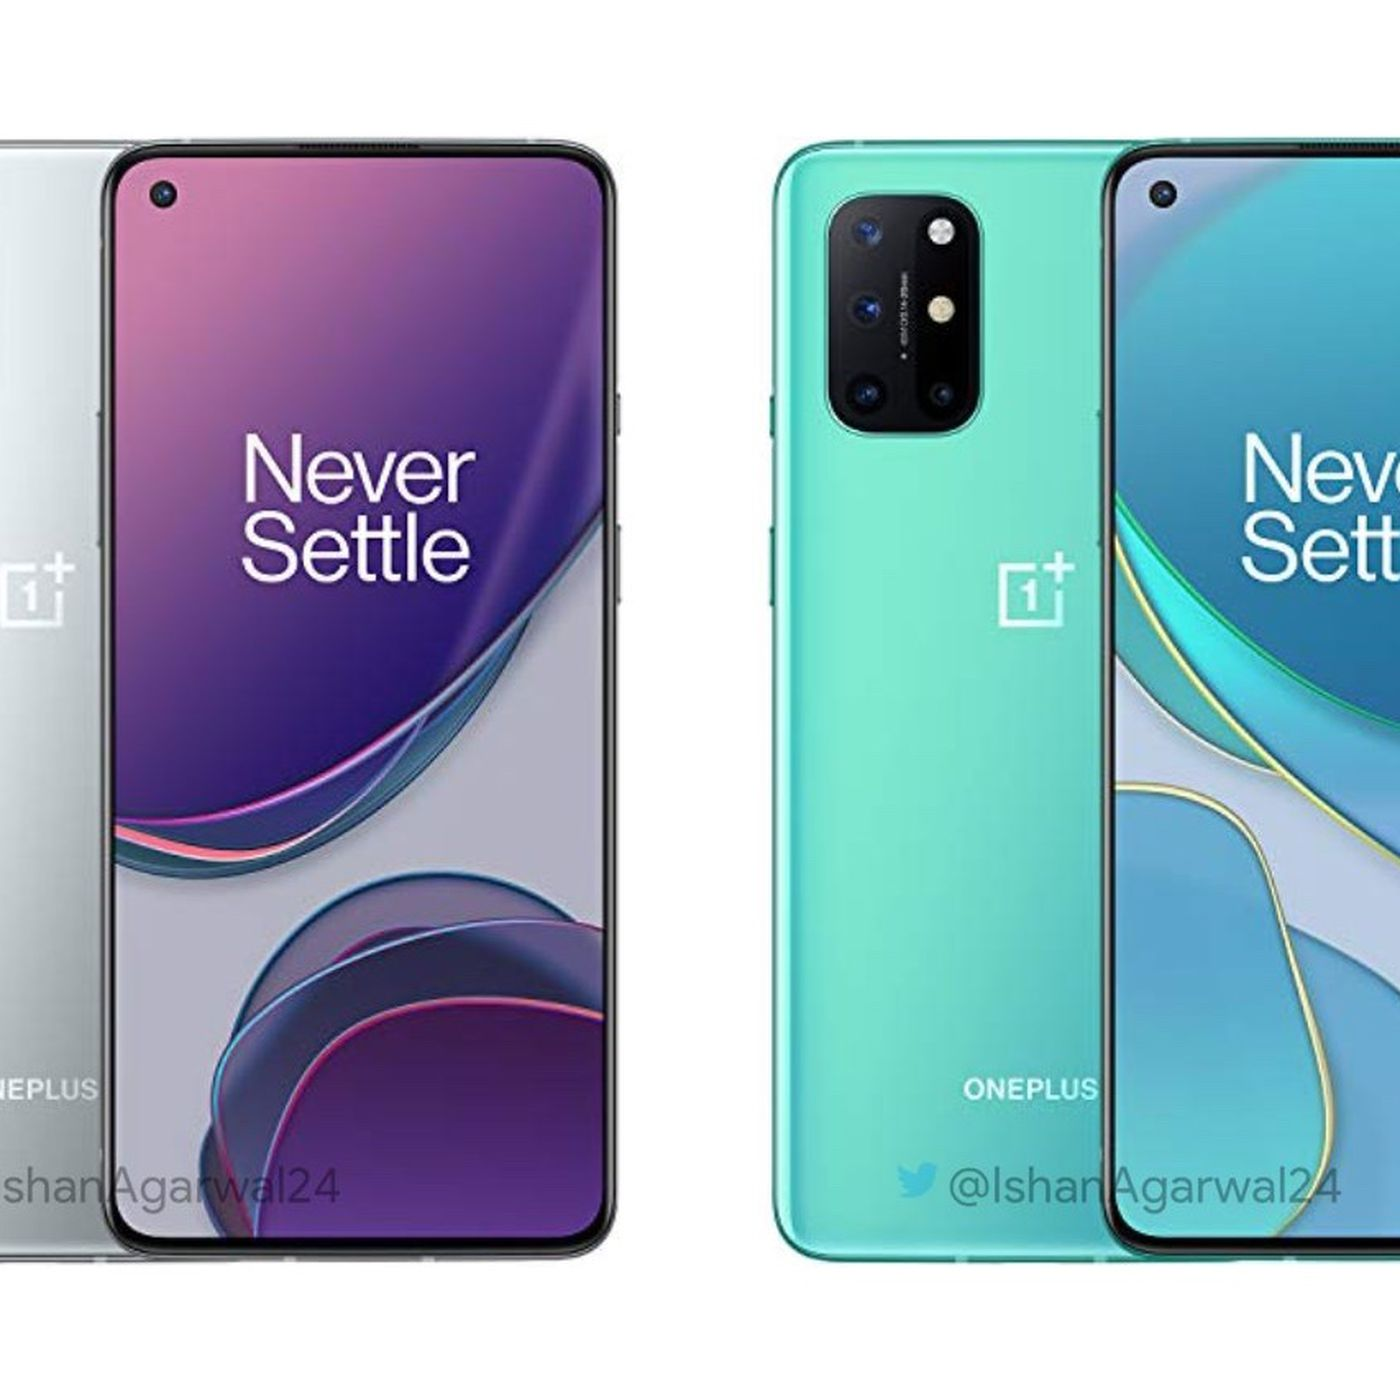 Here's what the OnePlus 8T looks like ...